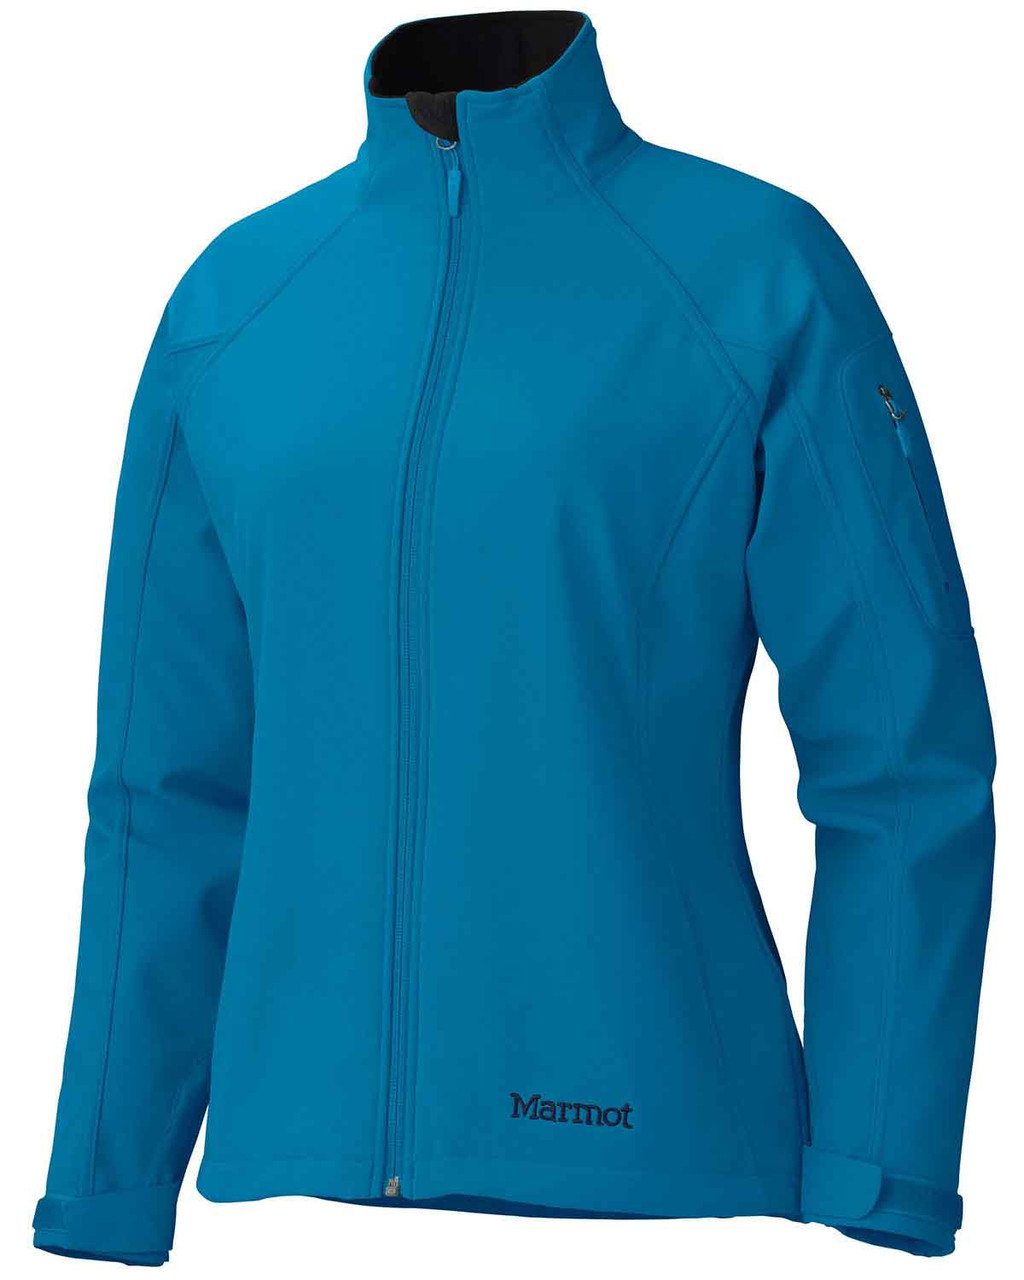 Dark Atomic - Jacket, 85000 Marmot Ladies' Gravity Jacket | BlankClothing.ca